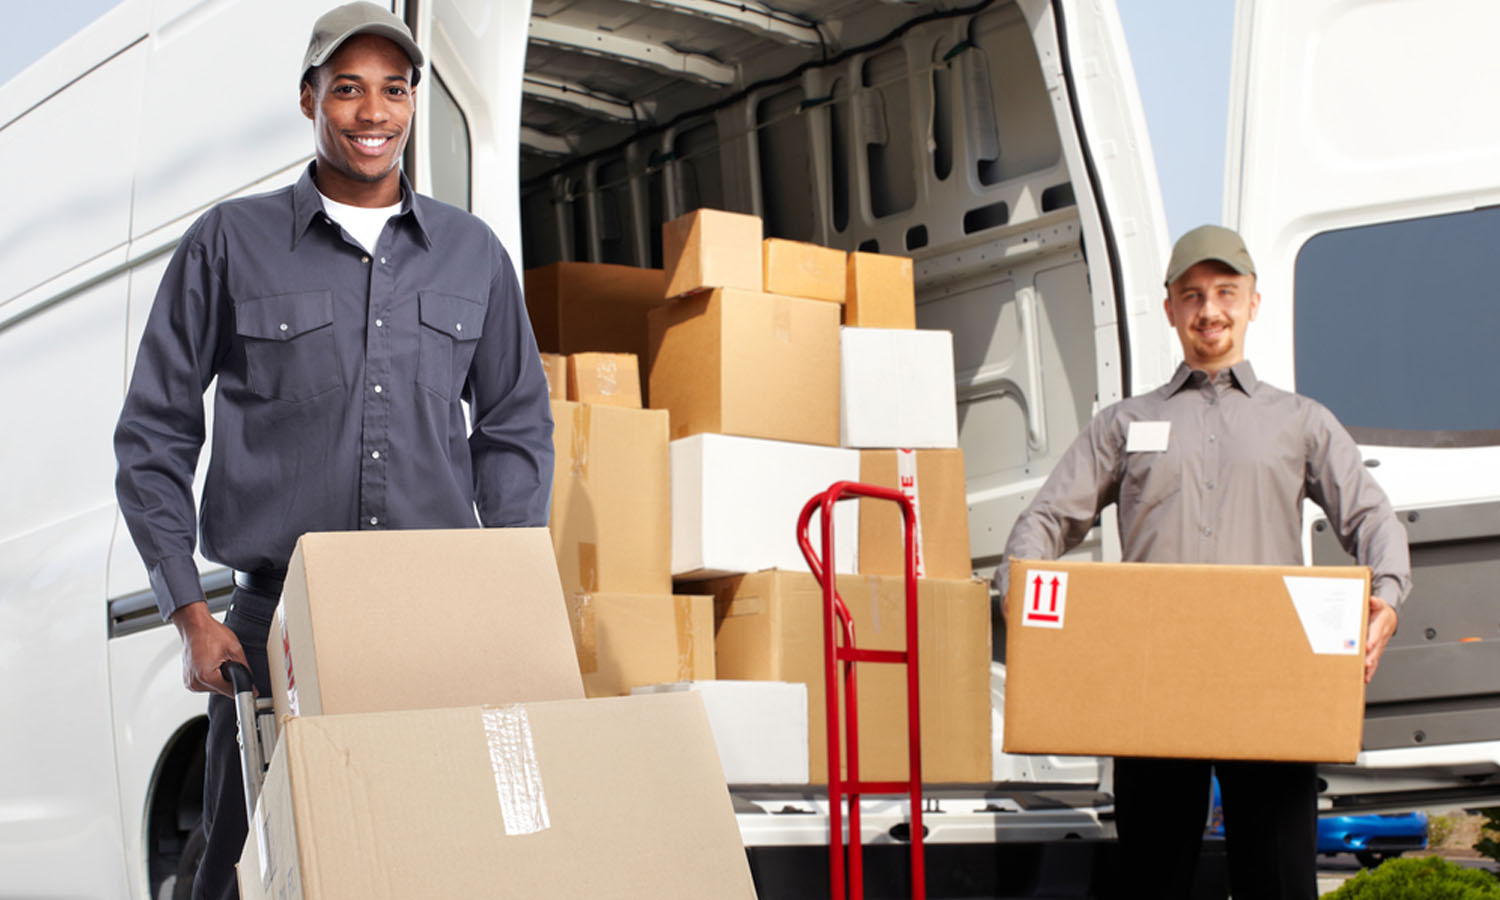 Removalists At Your Doorsteps, Making Your Shifting Hassle-Free